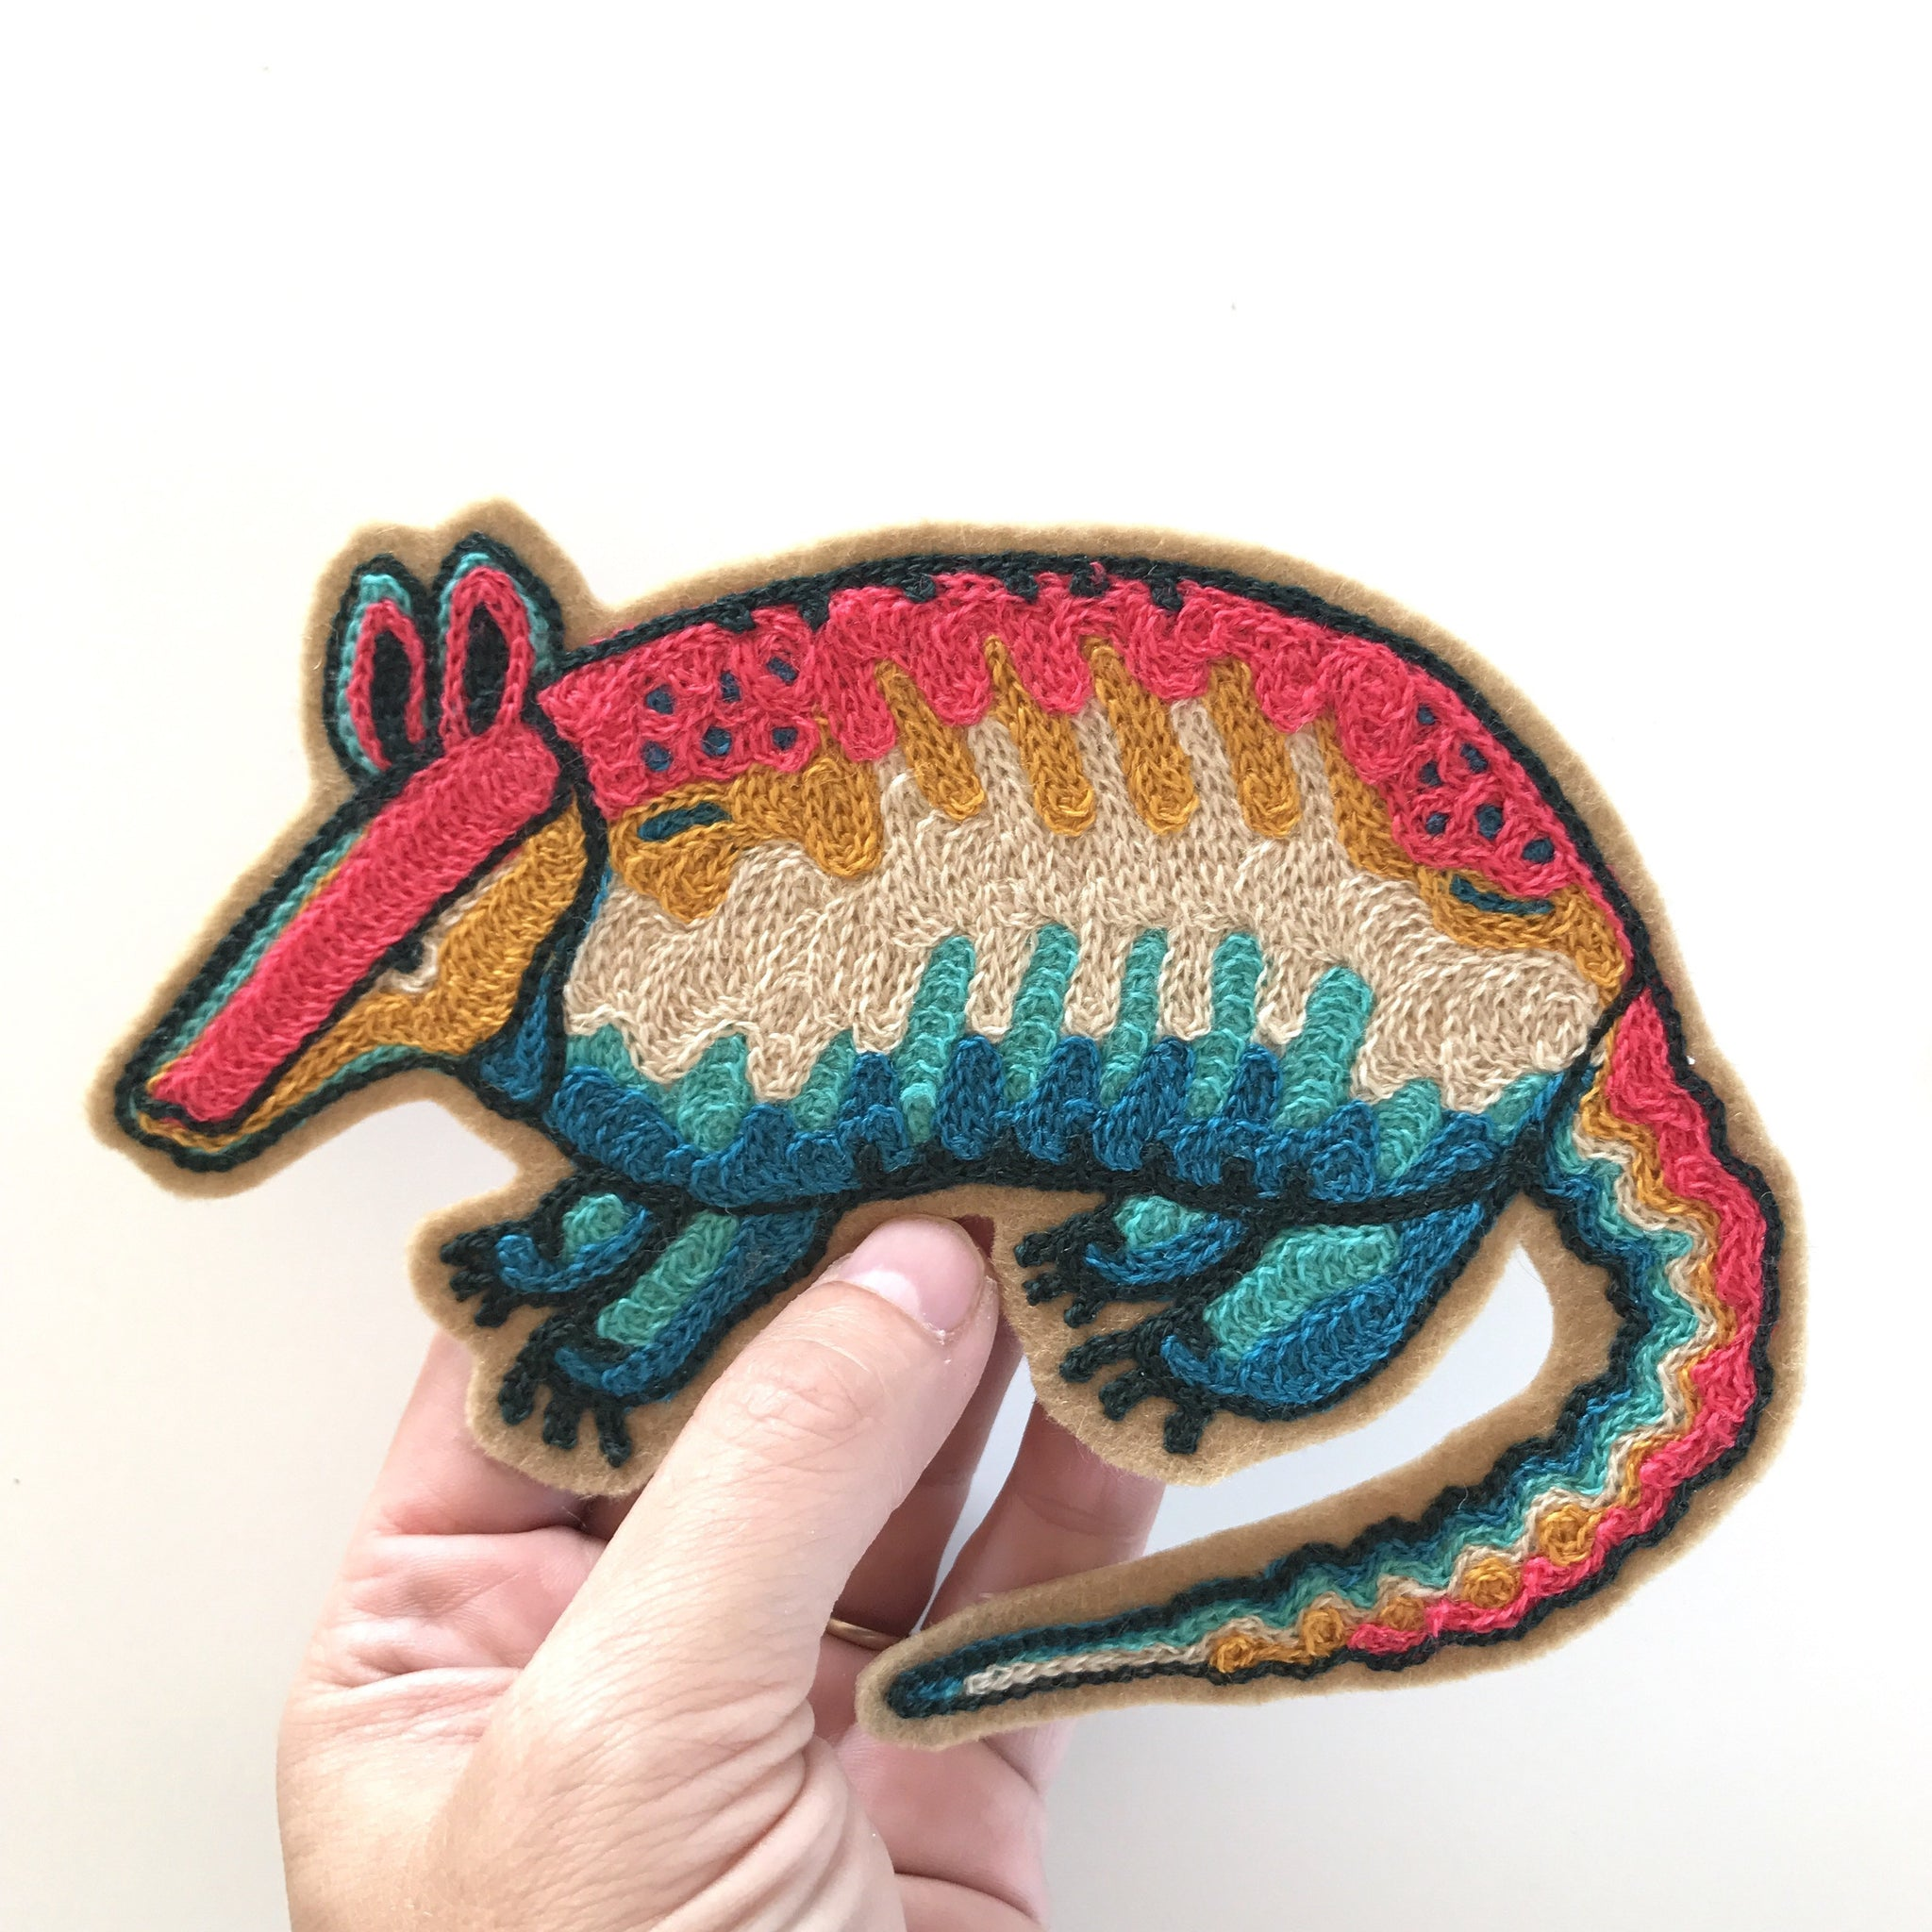 Neon Armadillo Chainstitch Patch